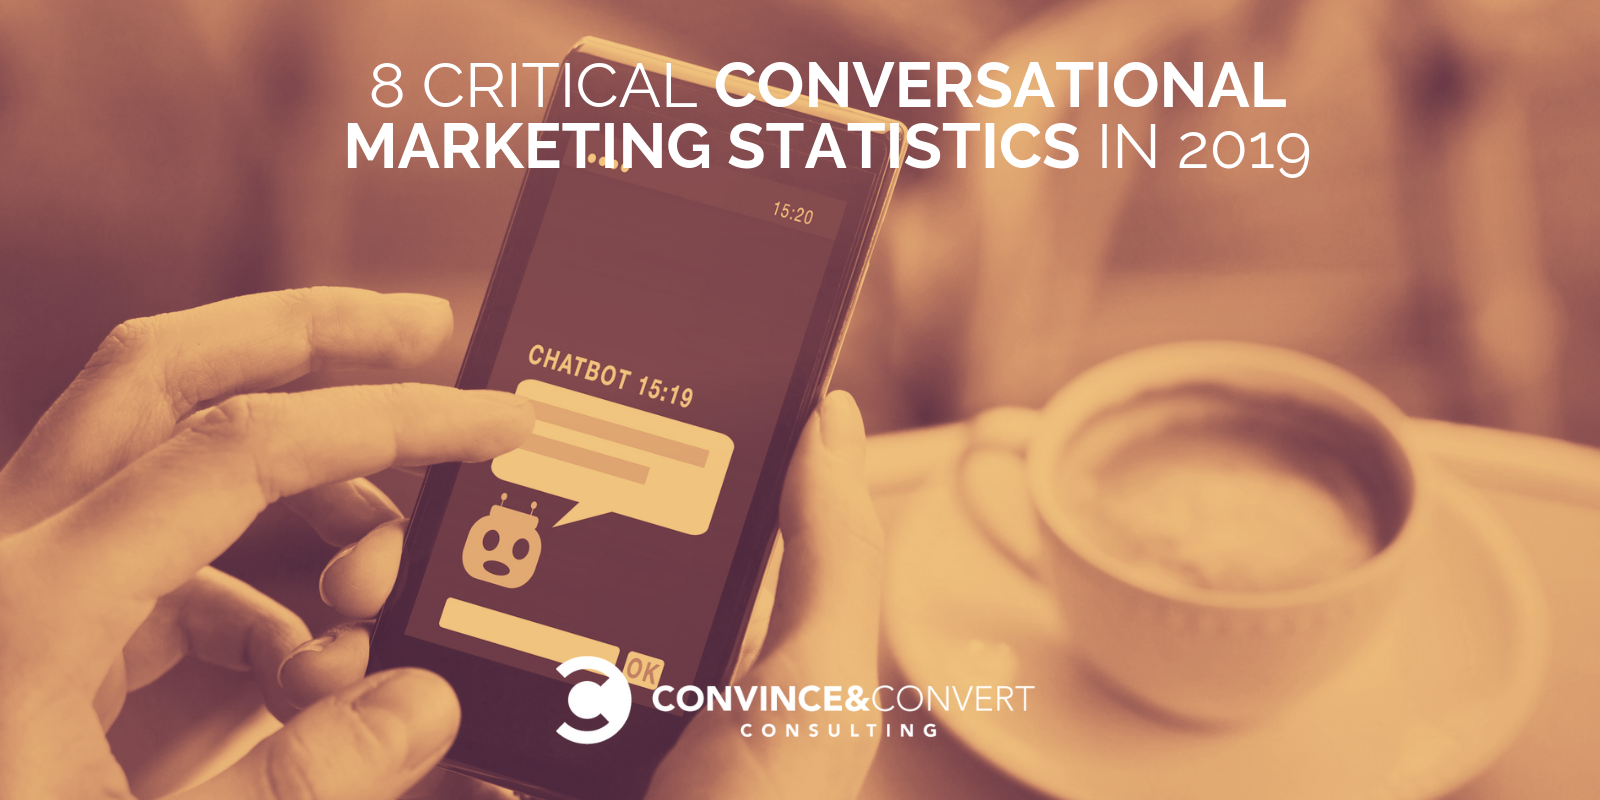 Conversational Marketing Statistics